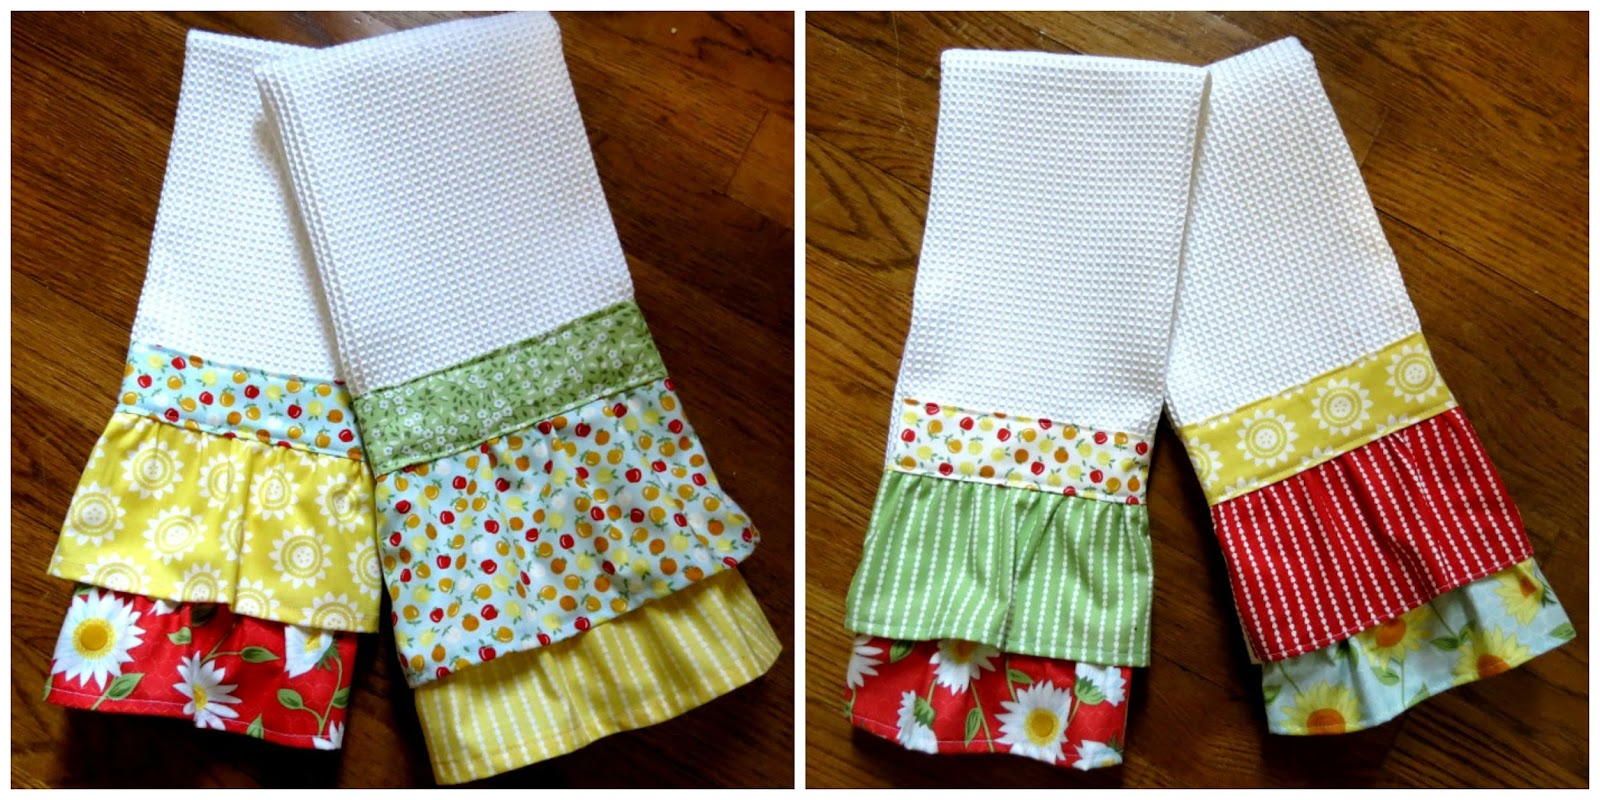 Perfect And There You Have Your Lovely New Springtime Kitchen Towels.